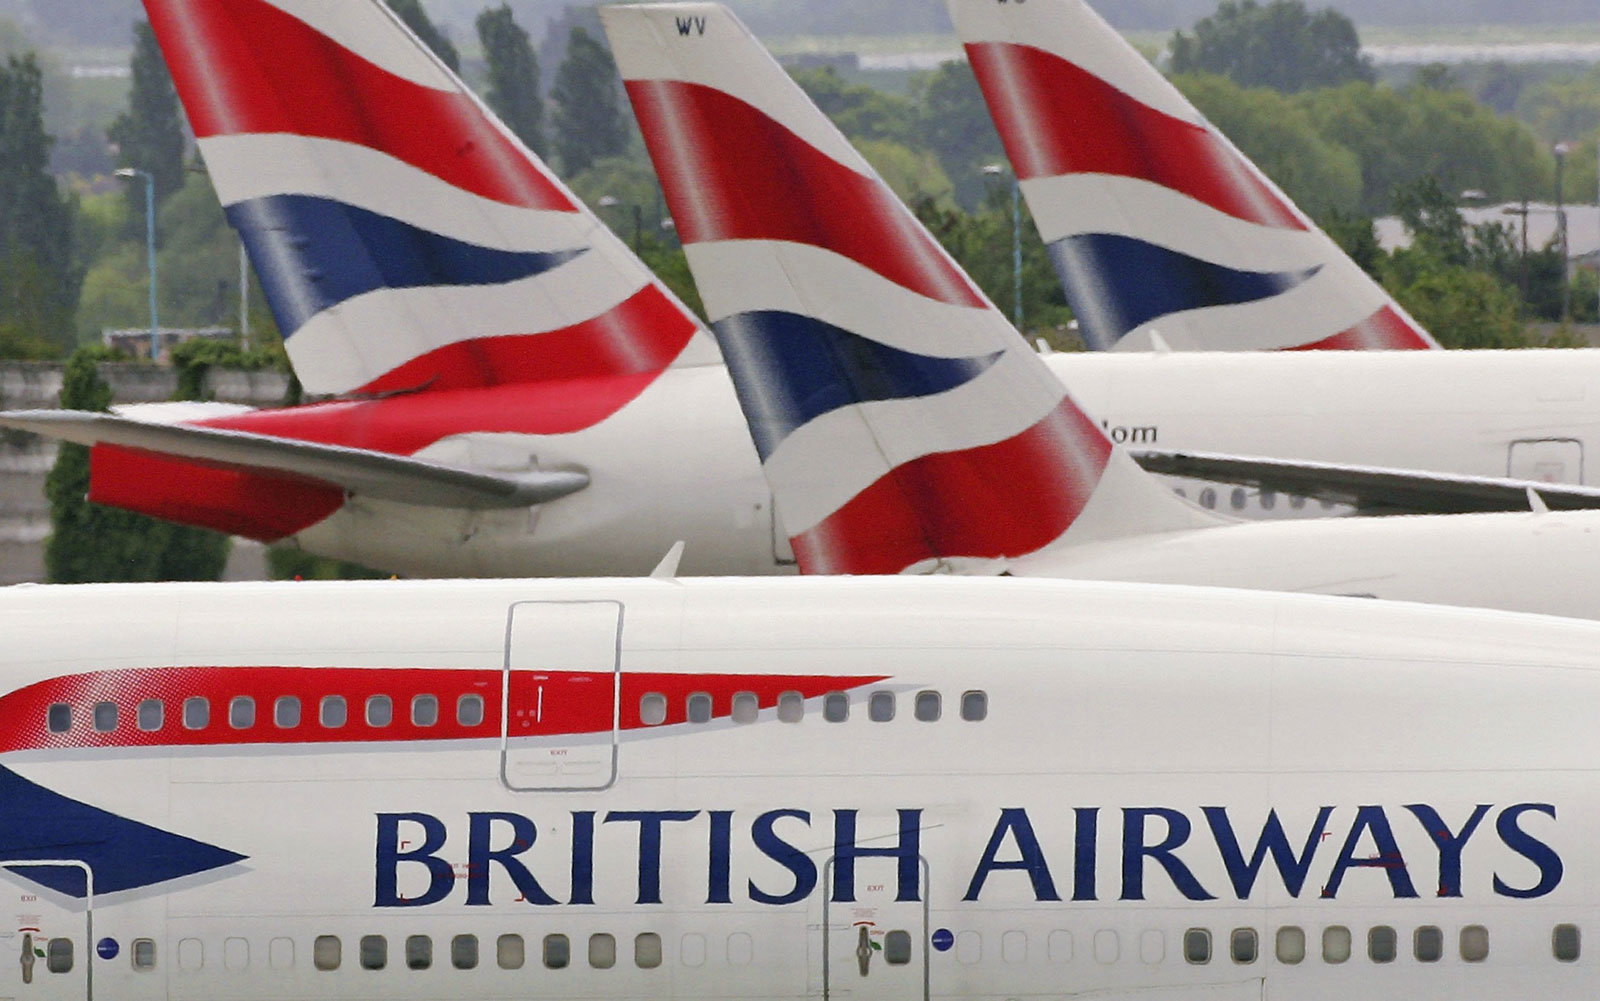 British Airways is upgrading passengers.